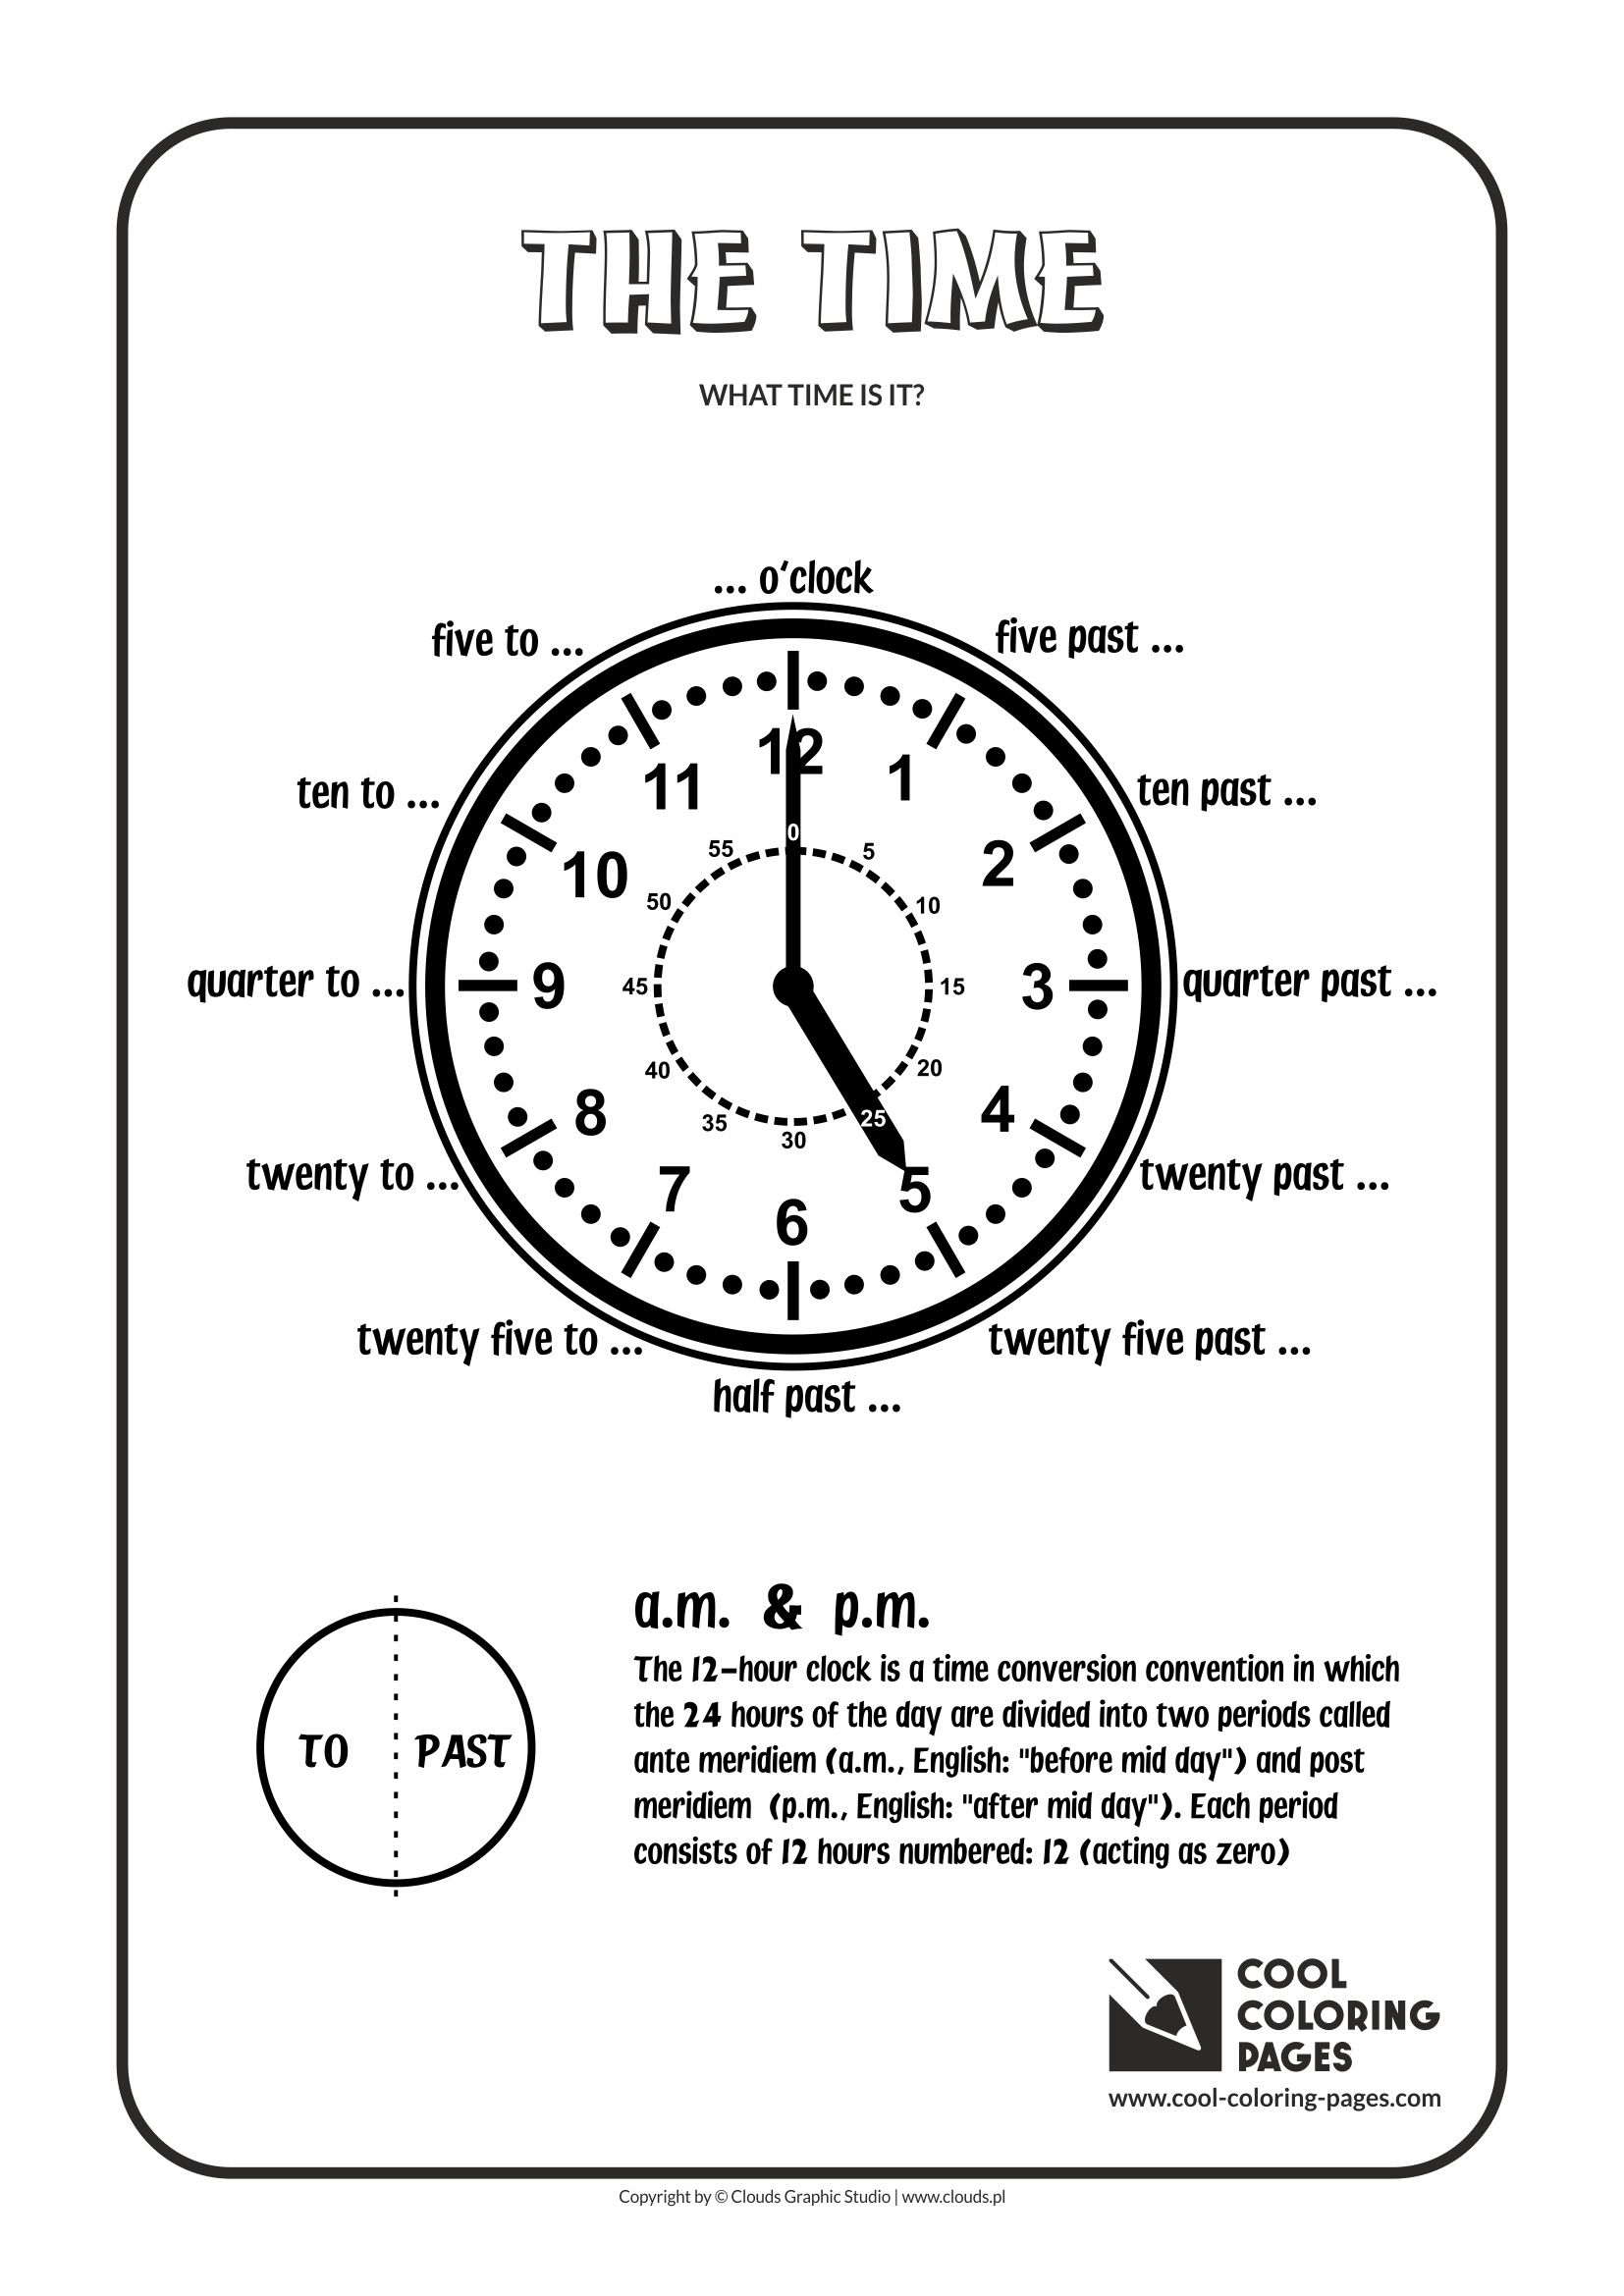 Cool Coloring Pages - Time / The time